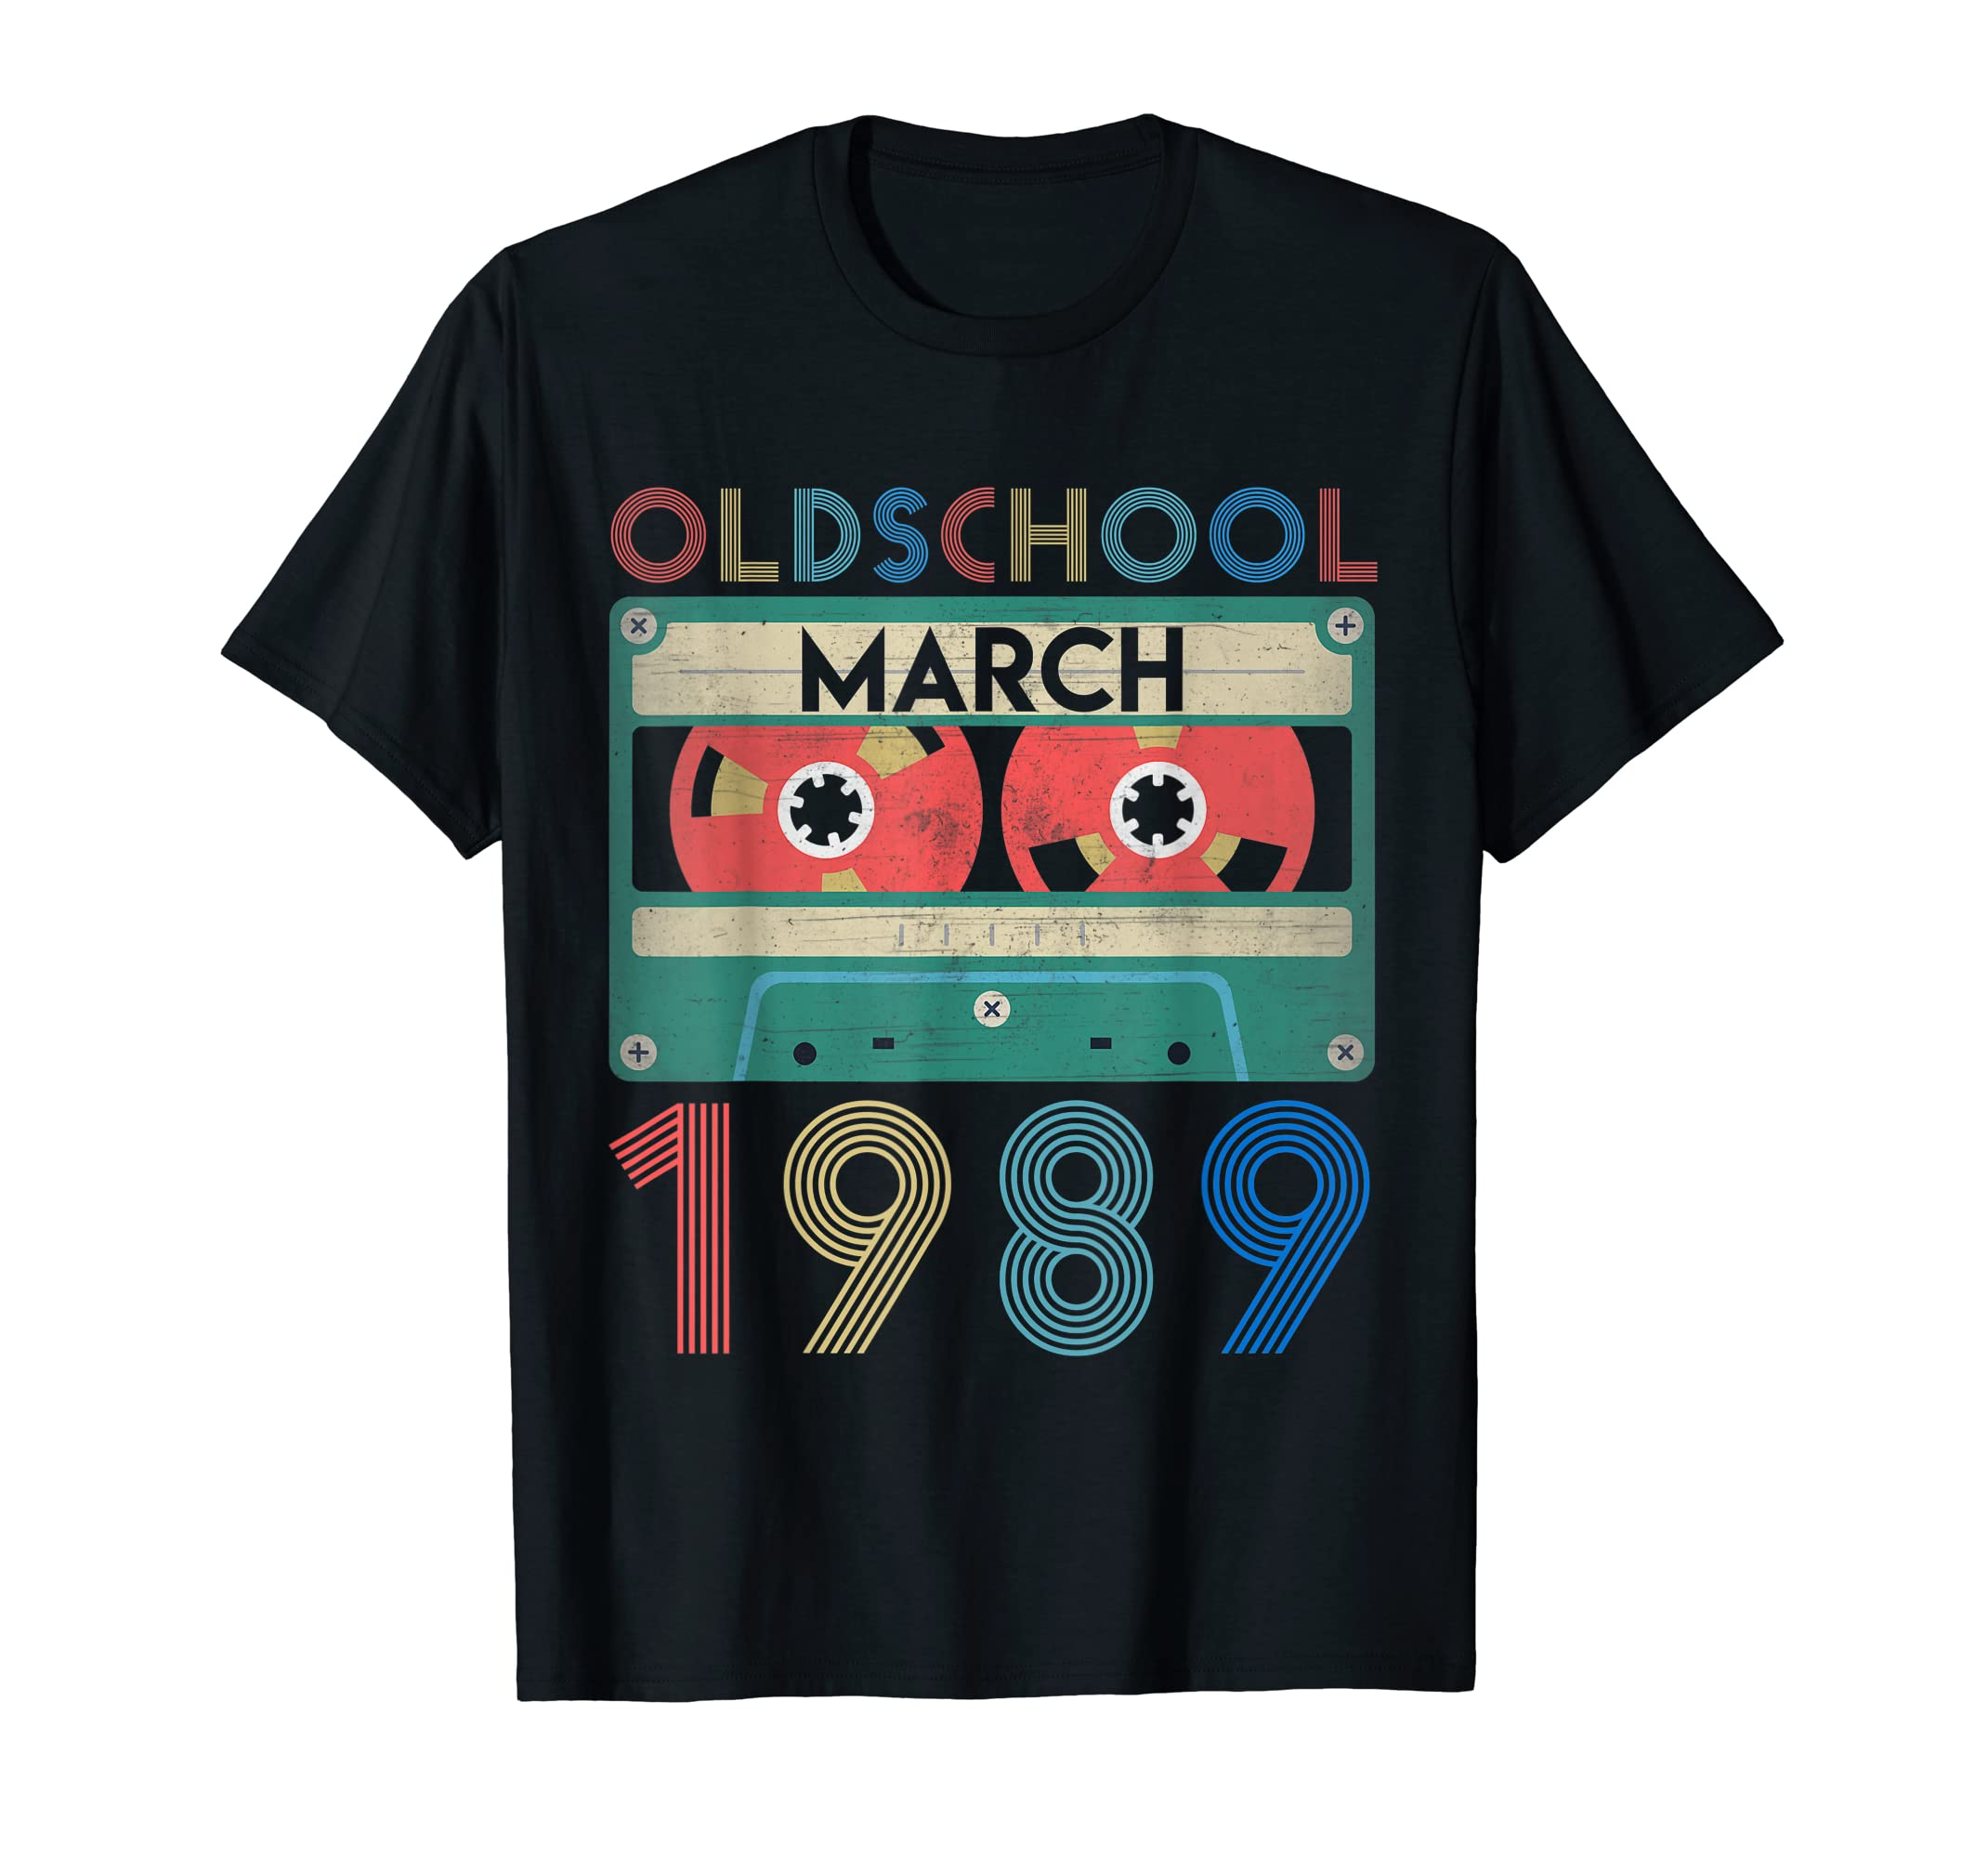 Amazon March Shirts Vintage 30th Birthday Gift Ideas 1989 Shirt Clothing